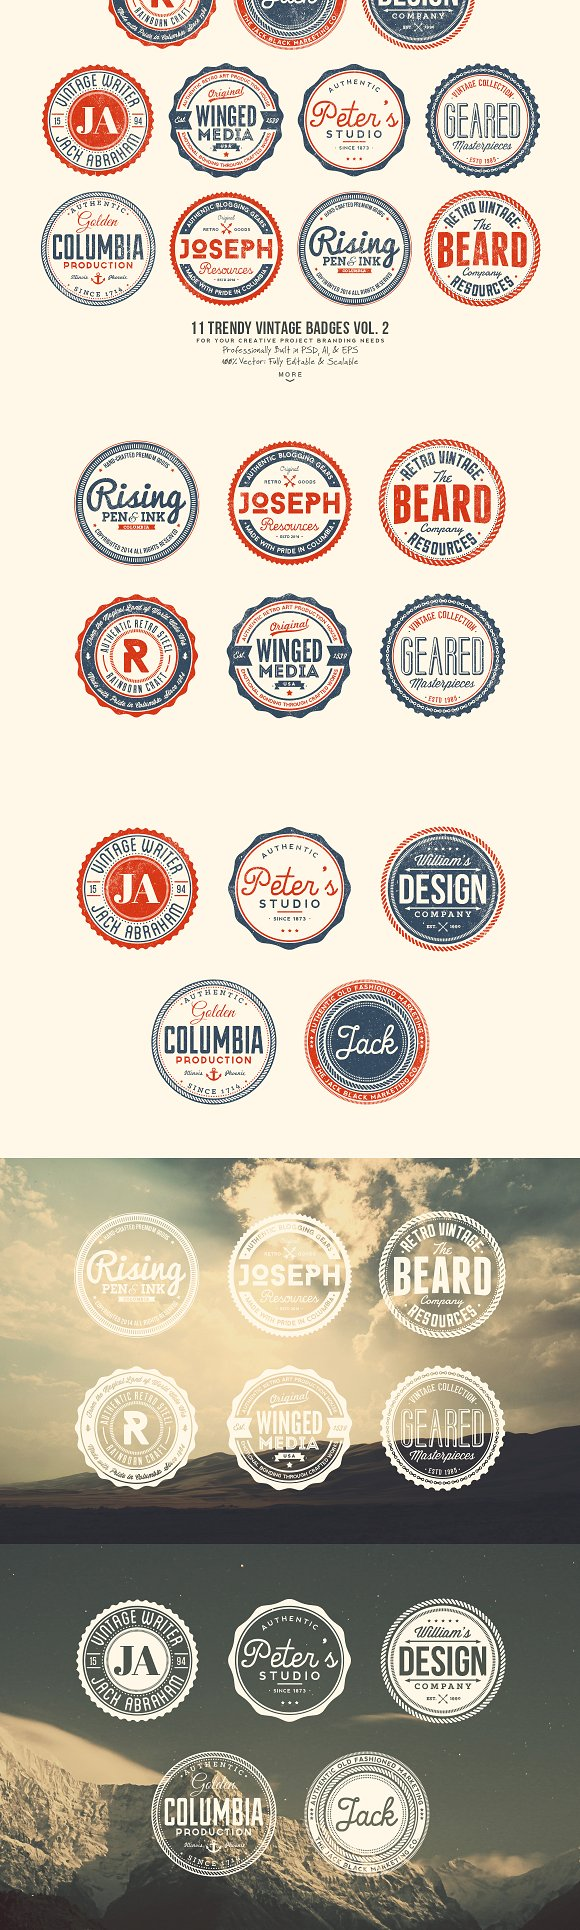 33 Trendy Vintage Badges Bundle Pack in Logo Templates - product preview 2